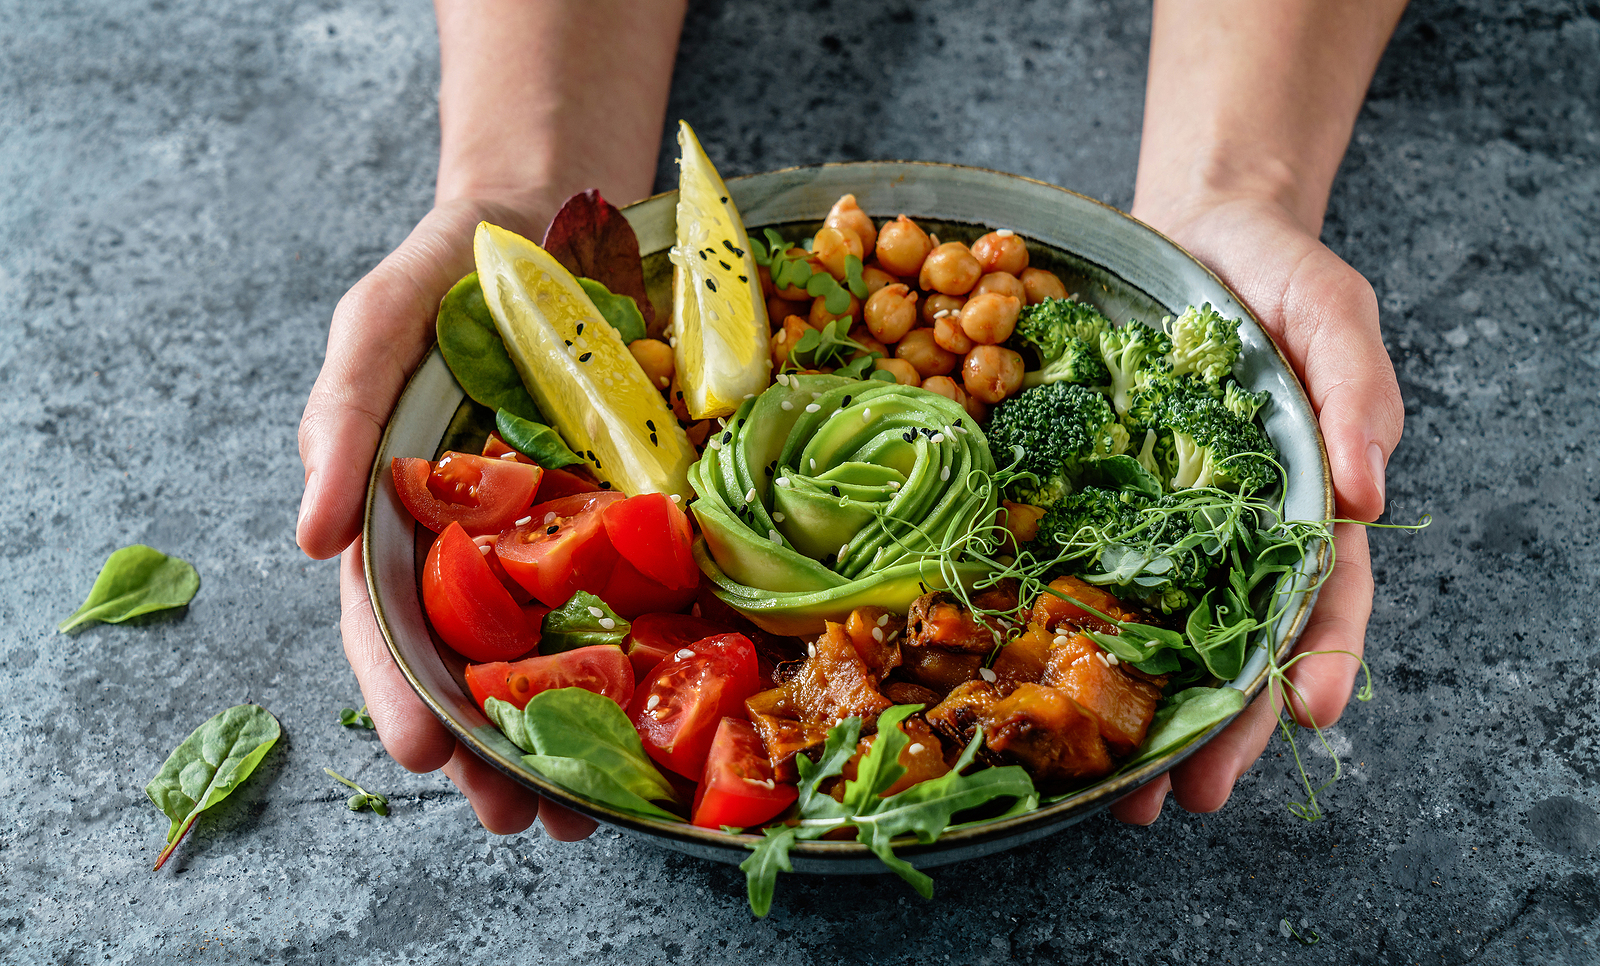 Plant-based or plant-forward dietary patterns consist of primarily foods from plants including fruits, vegetables, nuts, seeds, oils, whole grains, legumes, and beans.